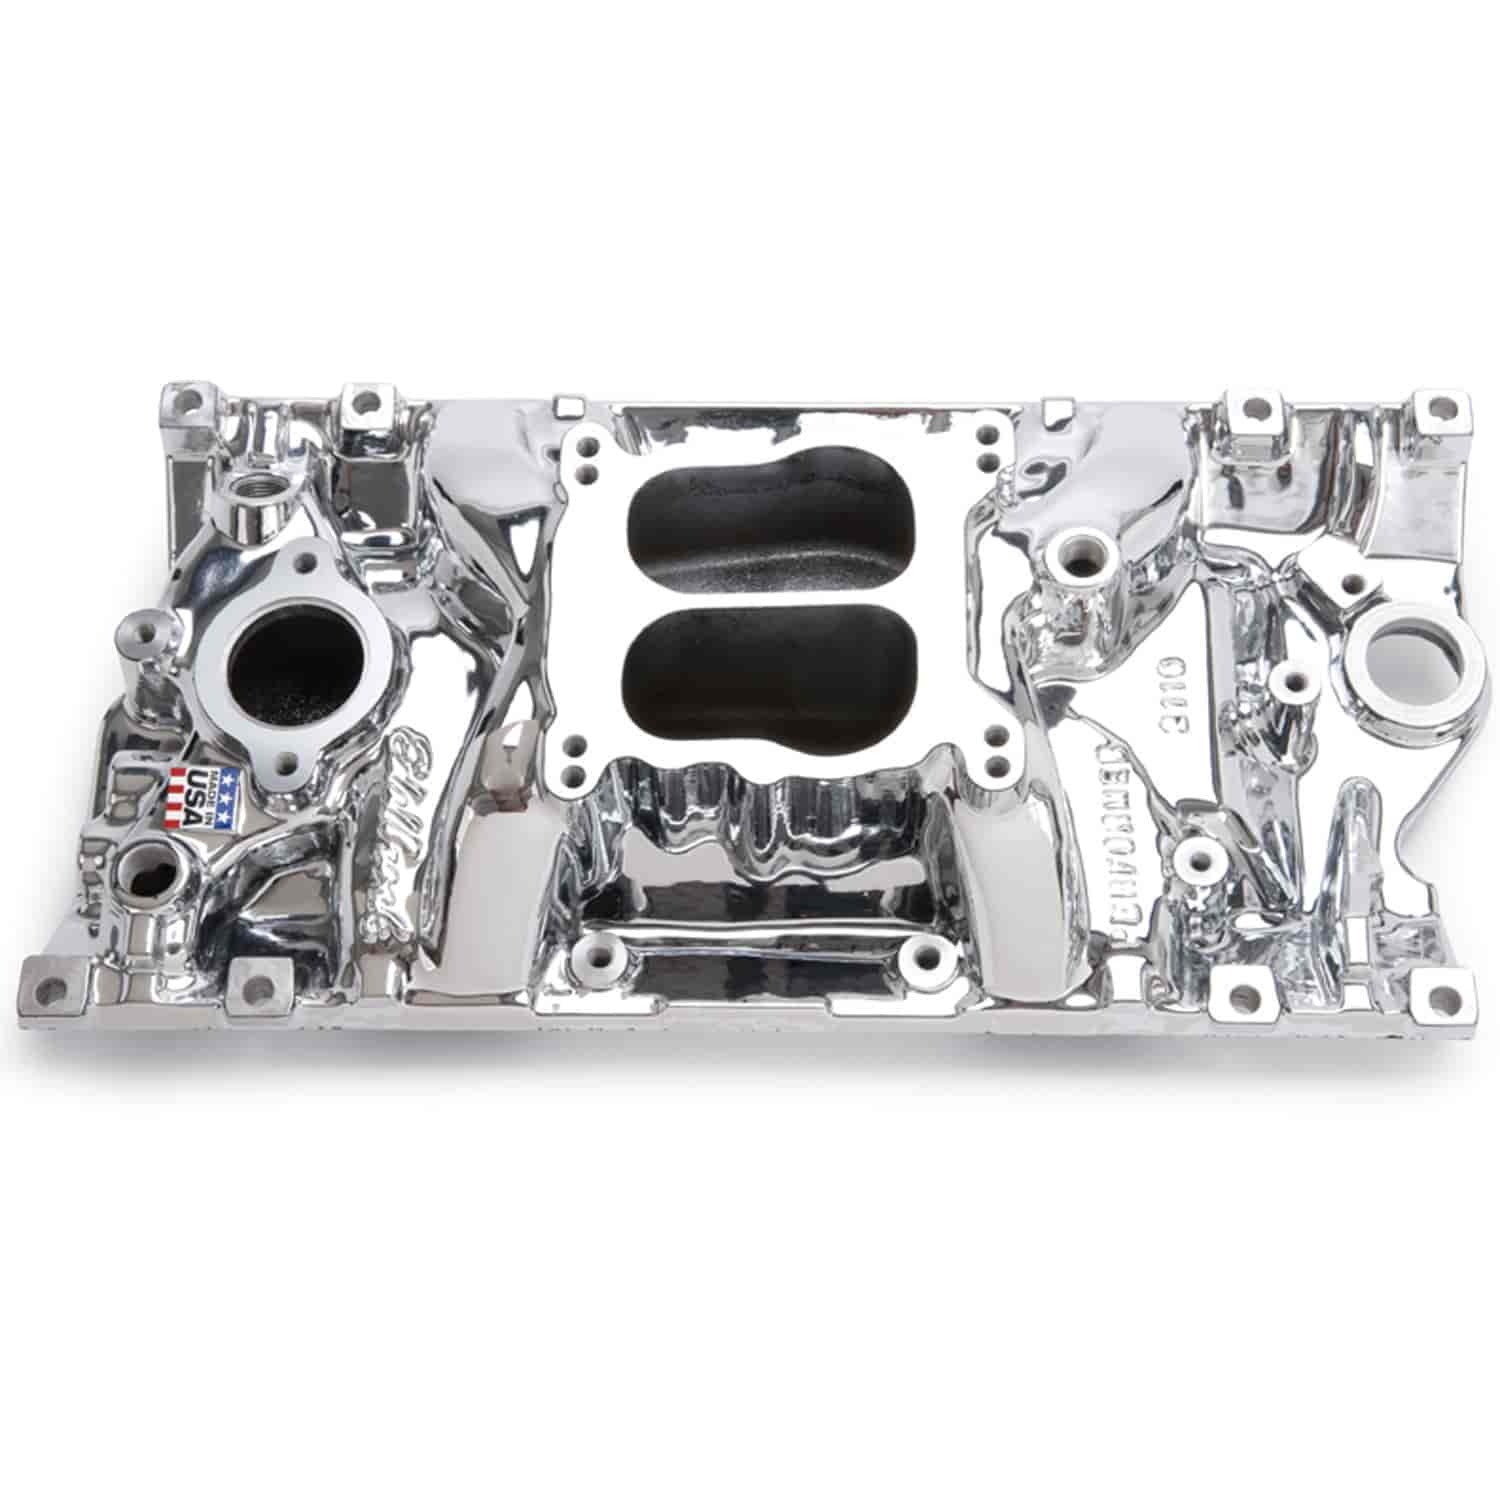 Edelbrock 21164 - Edelbrock Performer Intake Manifolds for Chevy